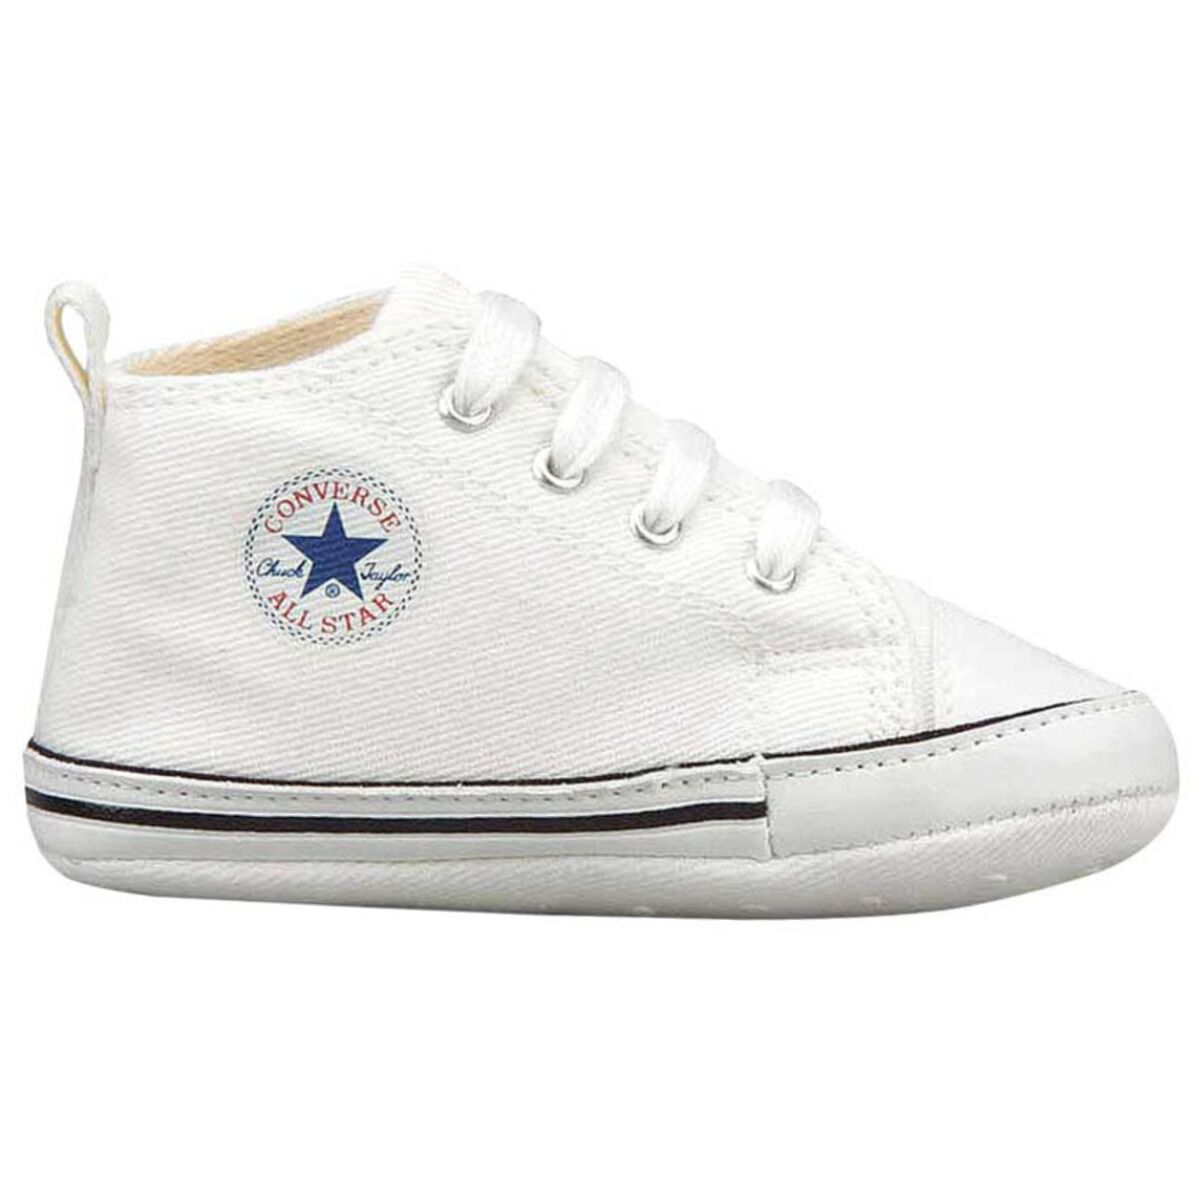 Converse Chuck Taylor First Star Infant Shoes